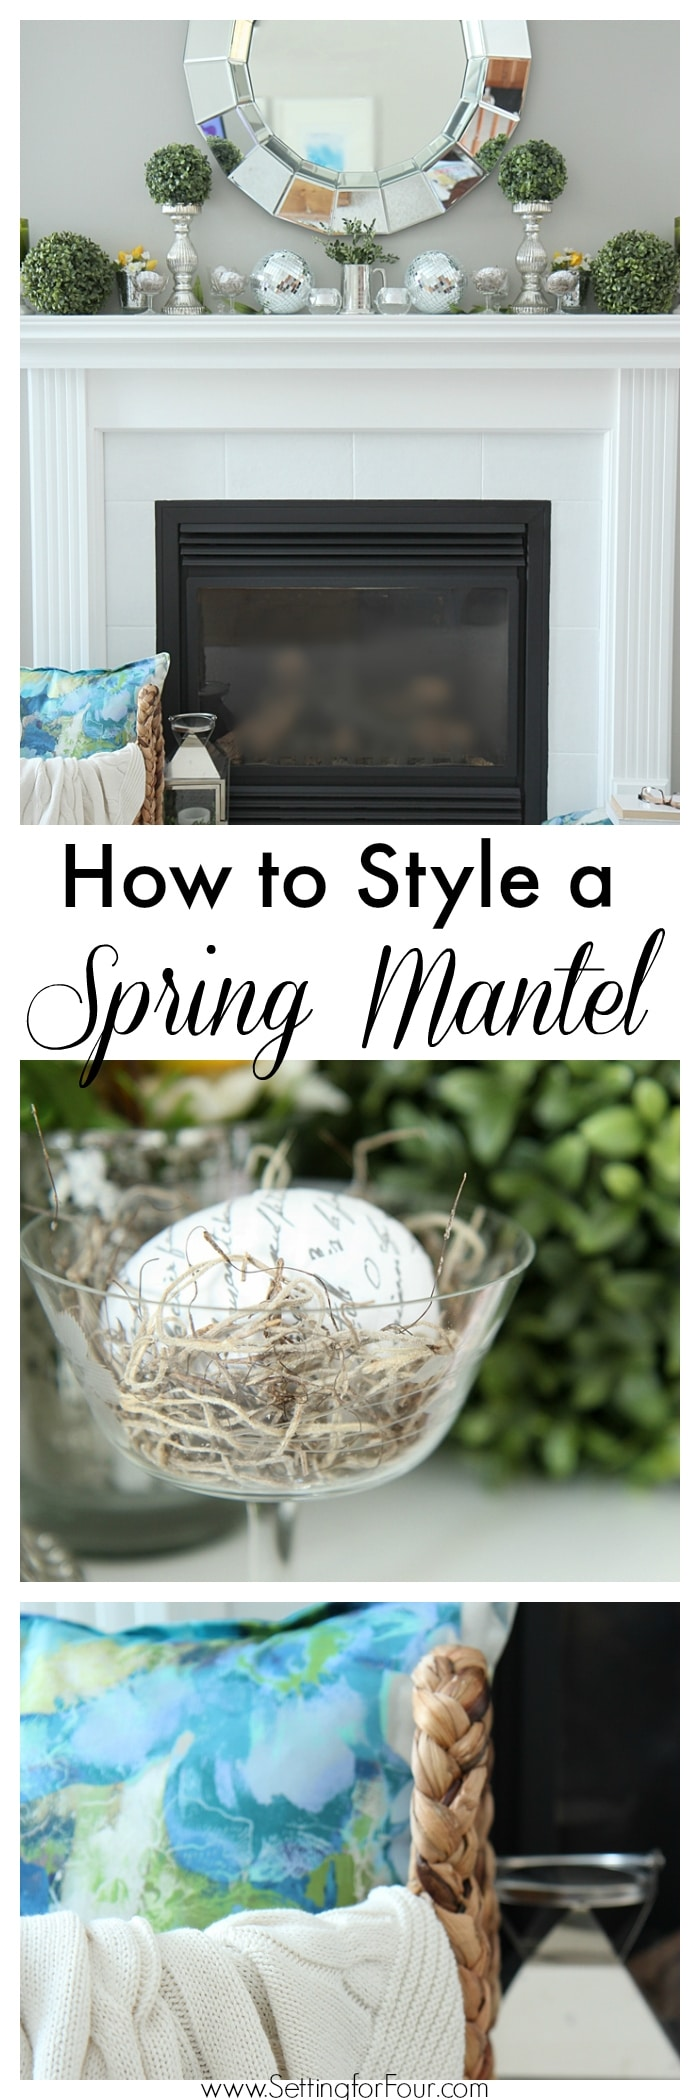 How to decorate and style a Spring Mantel! Decorating tips for the mantel surface to the hearth too!